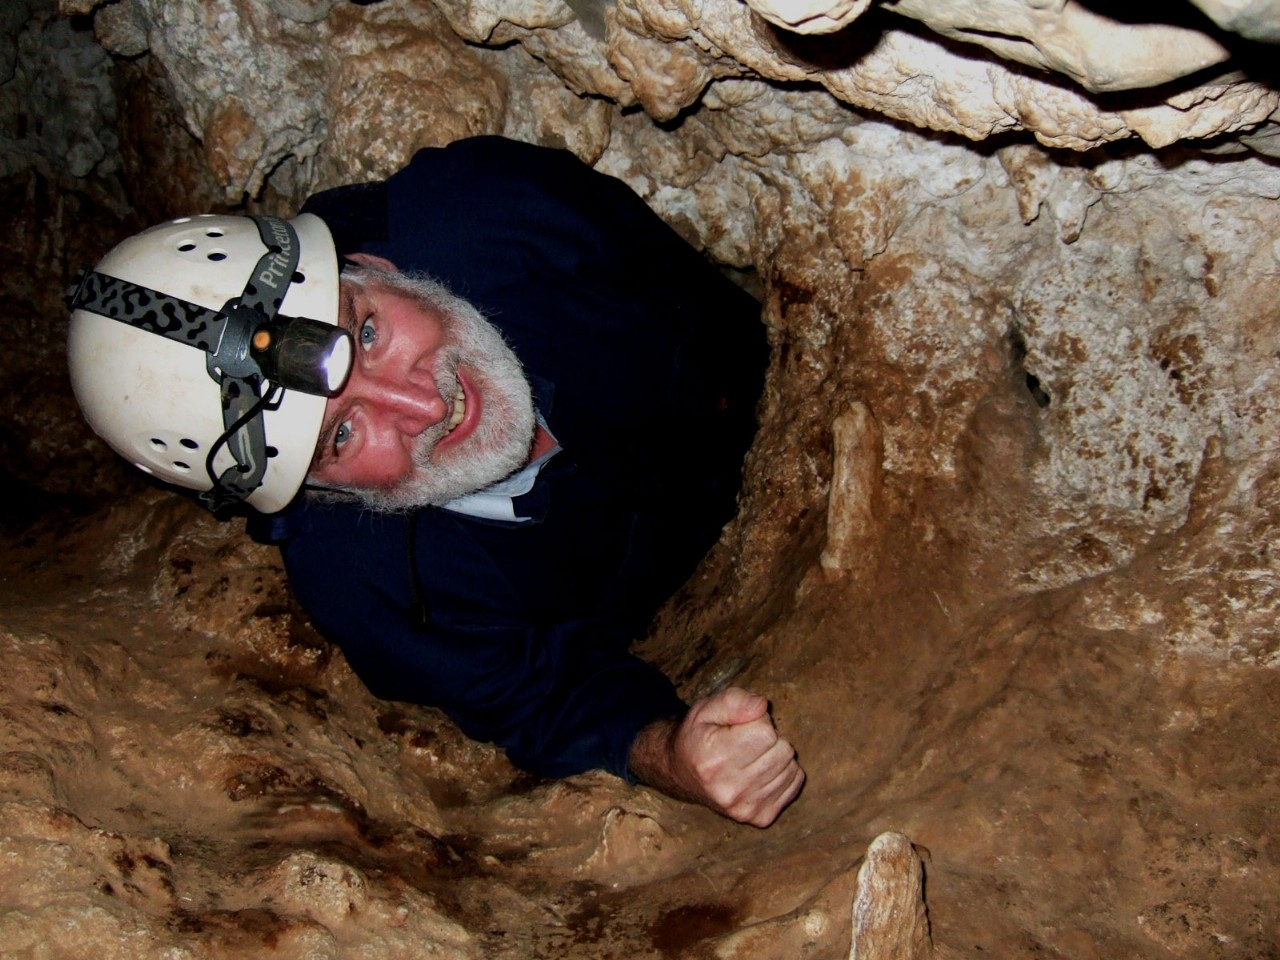 Plughole Adventure Caving